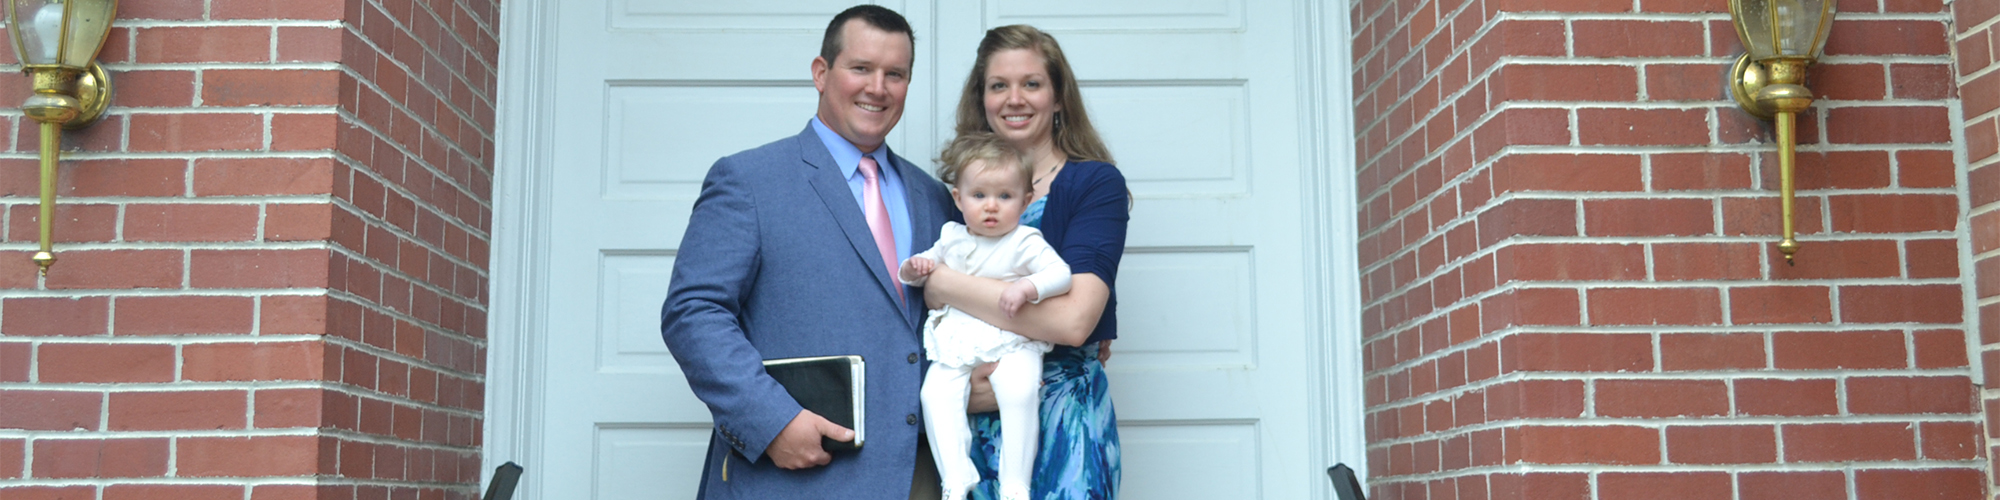 Pastor George With His Family